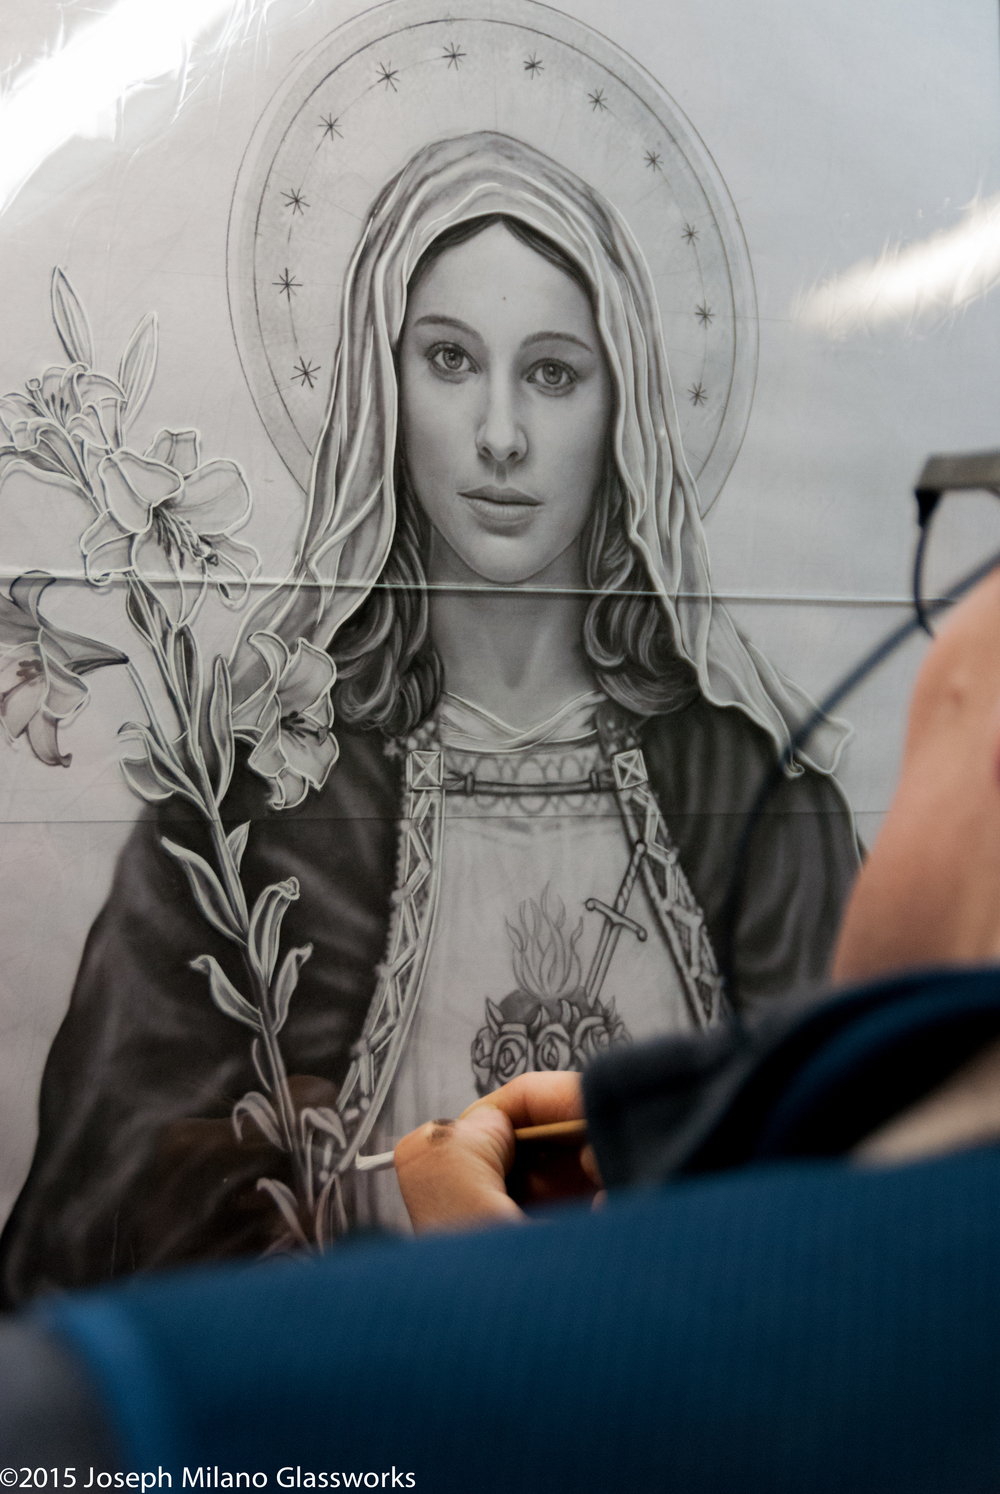 Painting detail of Immaculate Heart of Mary